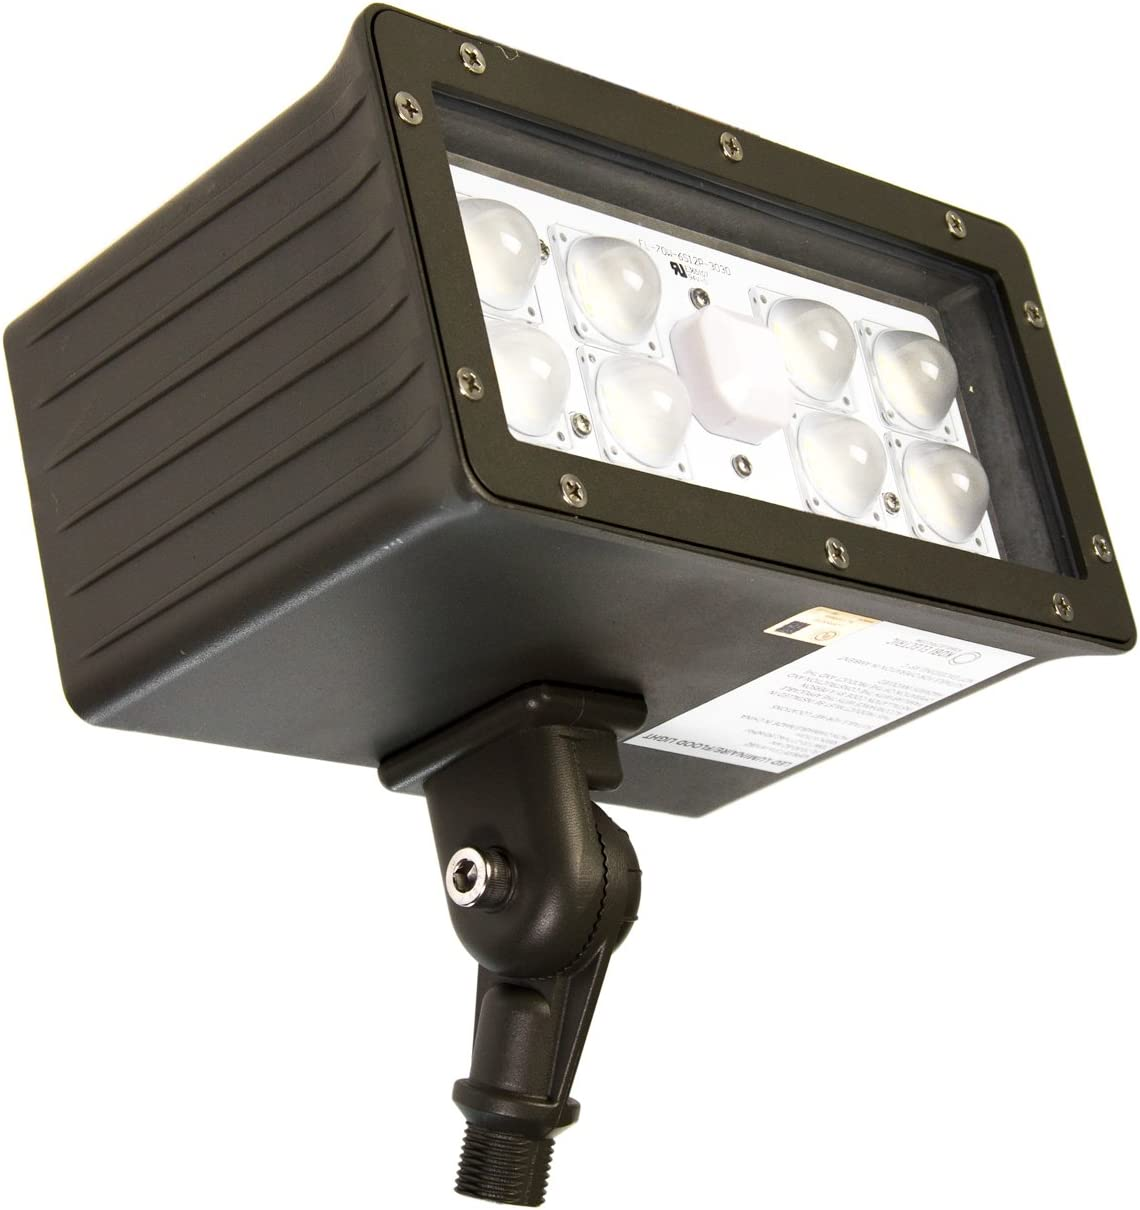 Kobi Electric FL-45-MV-BZ K0P7 Flood LED Fixture, 45W, 120-277V, Power Factor gt0.90, CRI gt80,5000K, Bronze